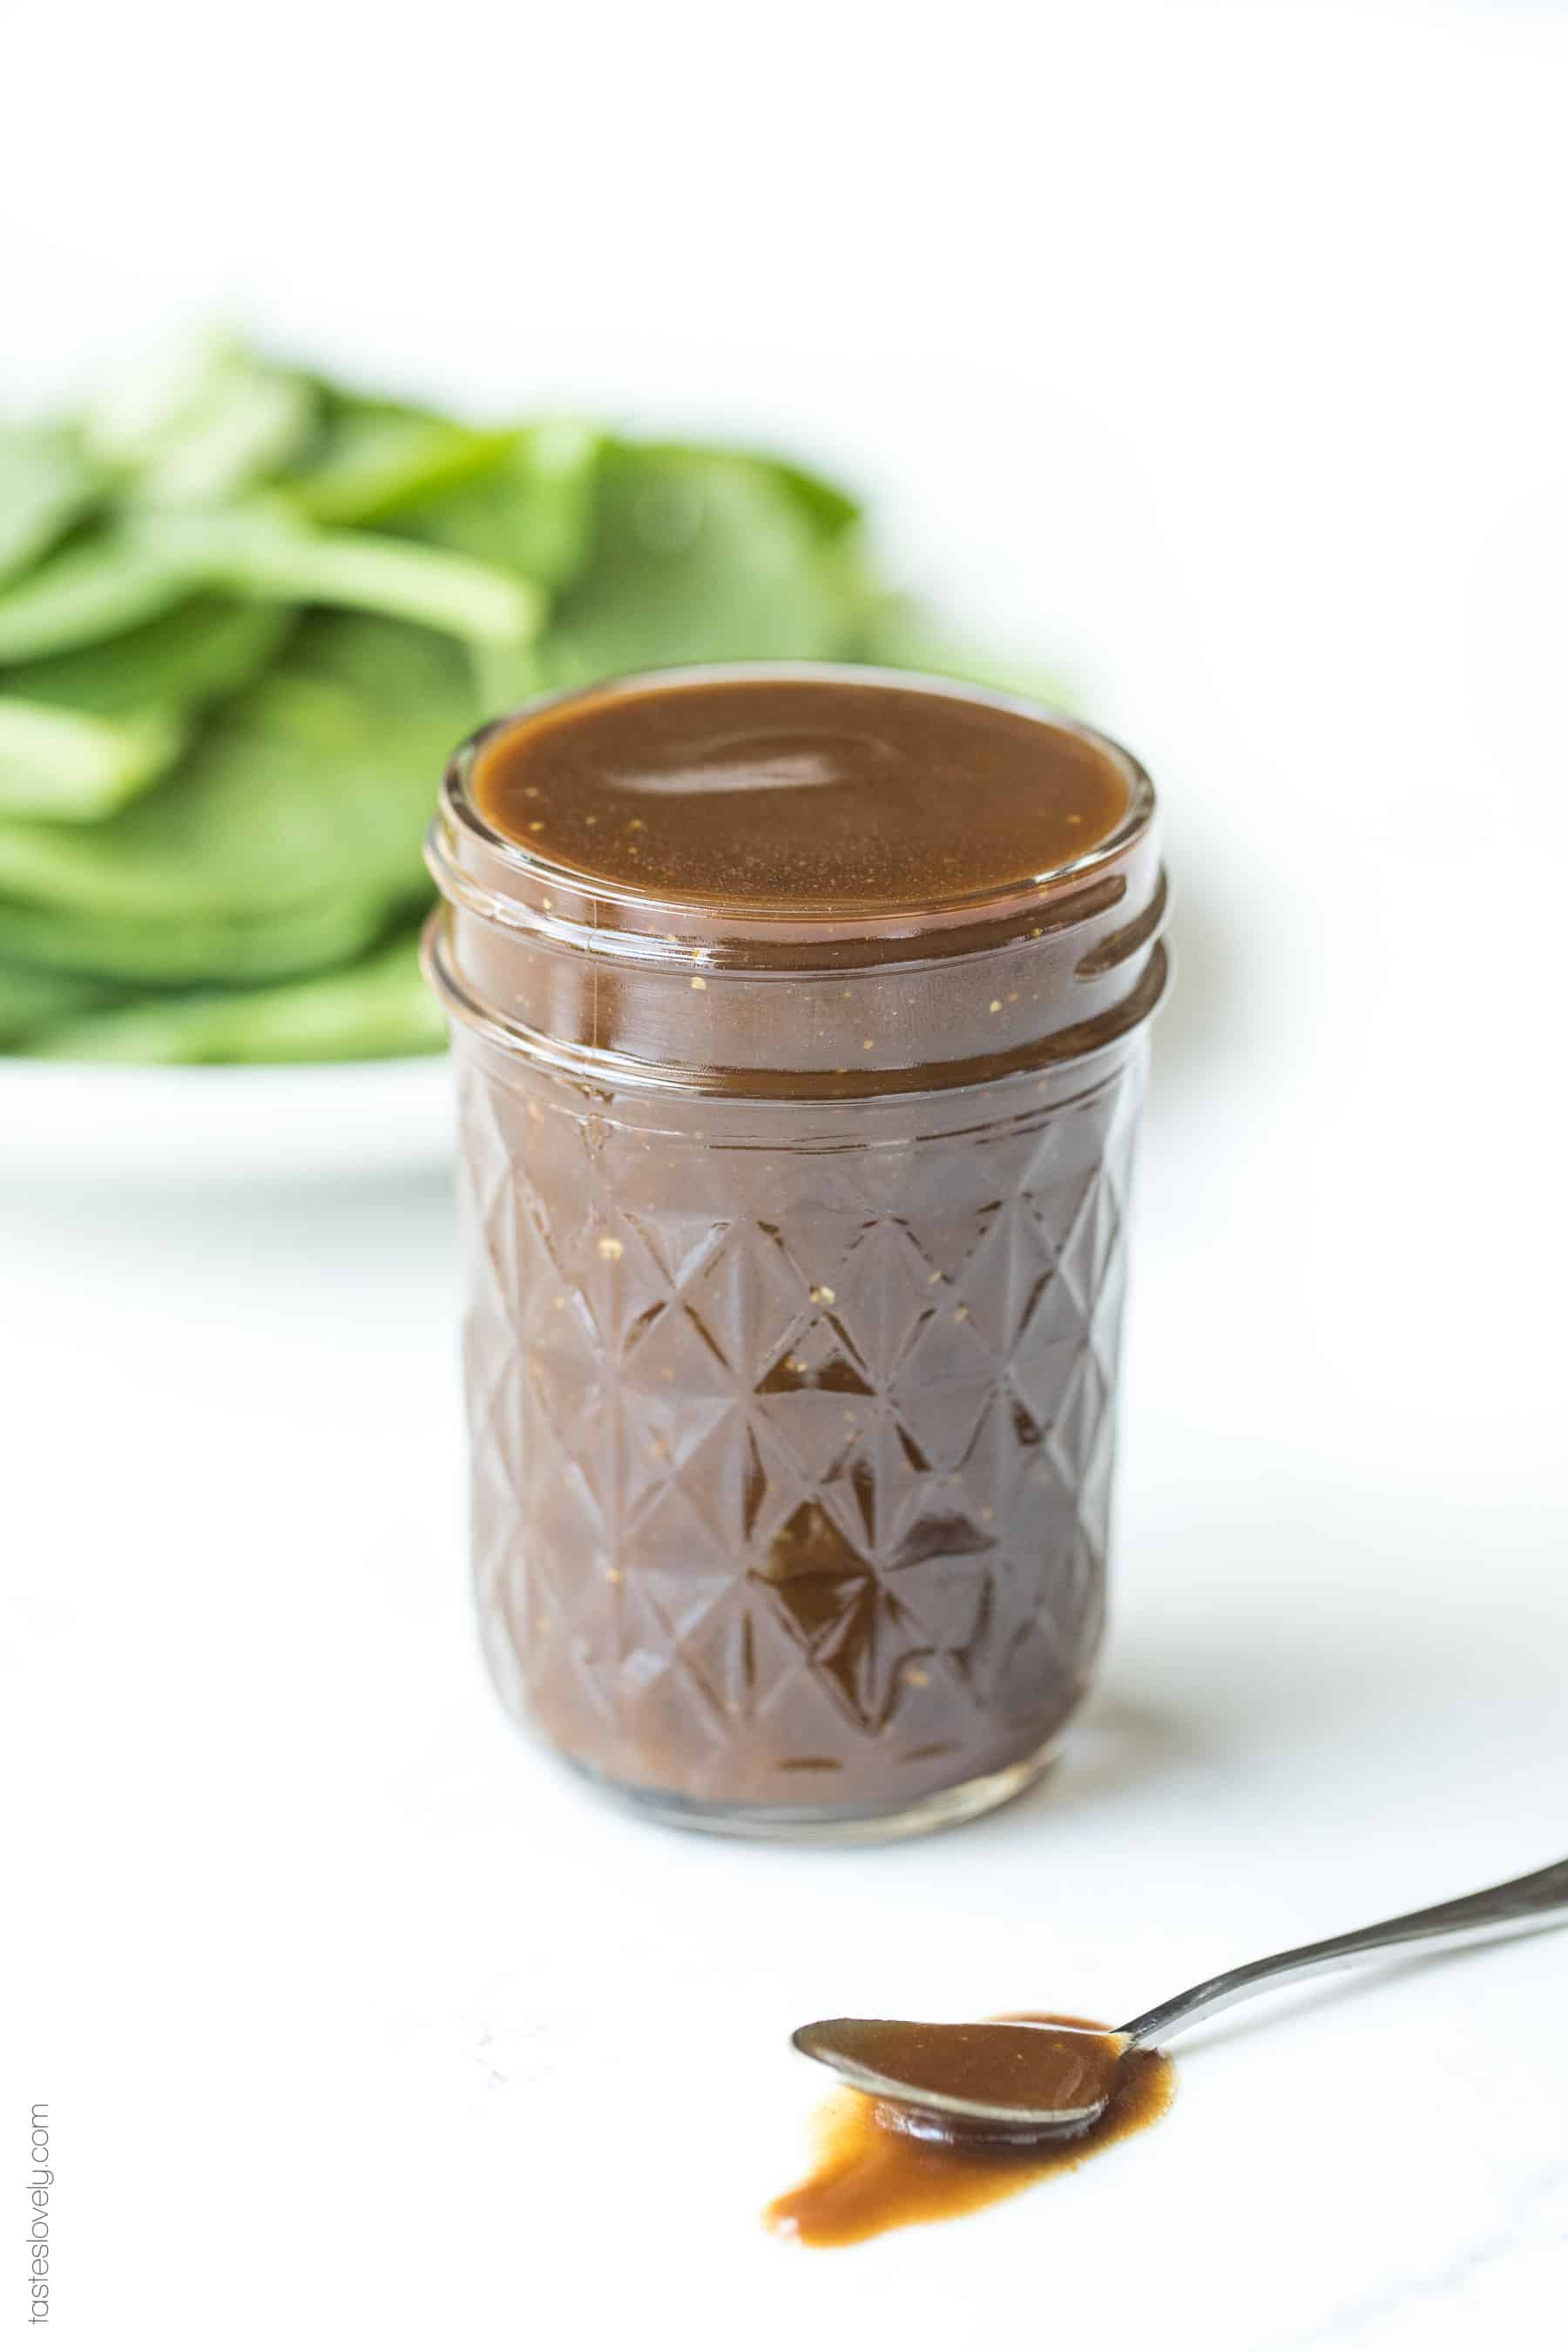 Balsamic vinaigrette salad dressing in a mason jar